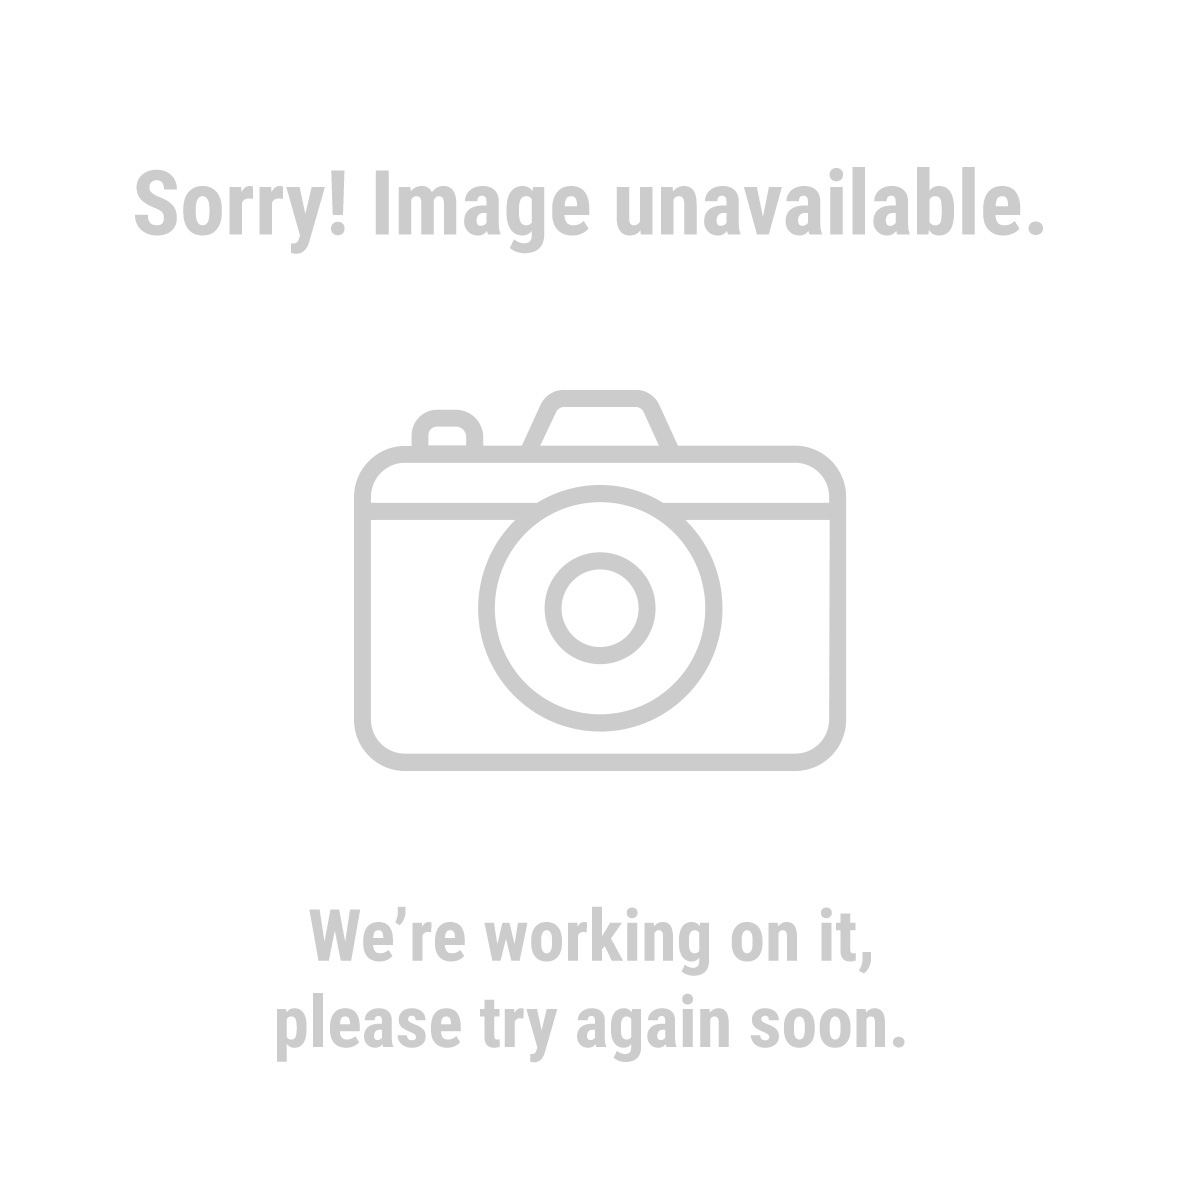 U.S. General® Pro 61656 72 in. 18 Drawer Glossy Red Industrial Roller Cabinet